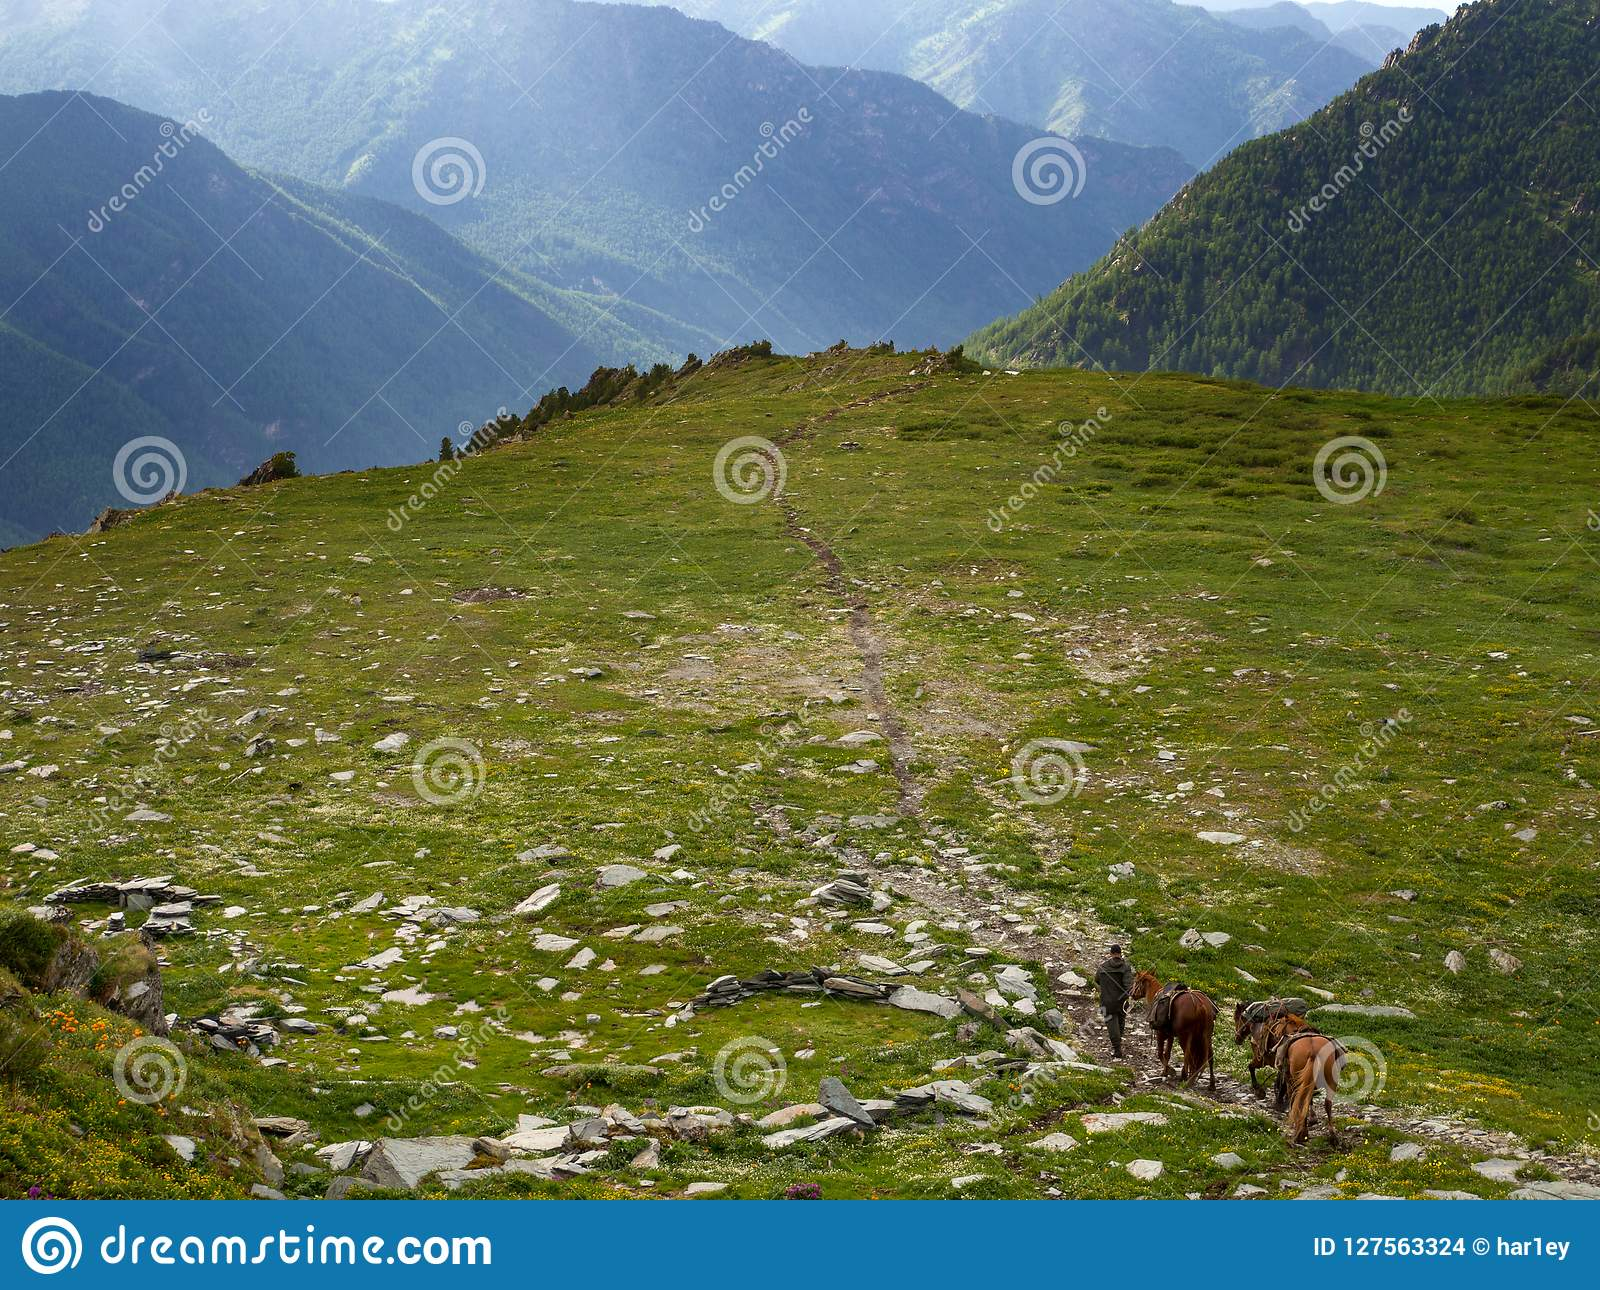 A rider with three horses walks along the path to the mountains.